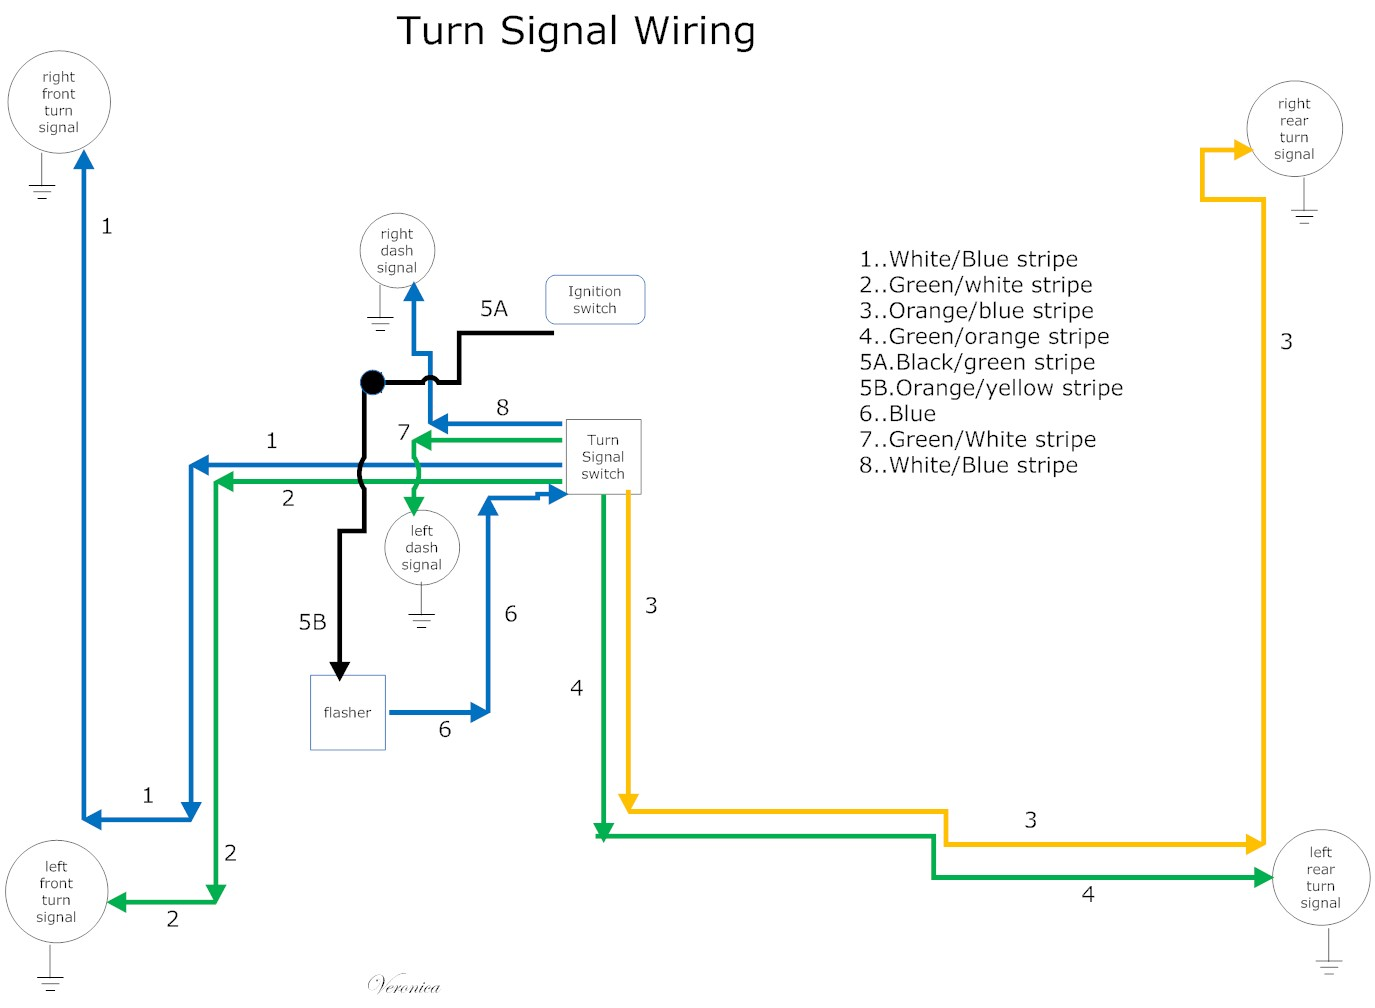 Turn+signal+Wiring the care and feeding of ponies 1965 1966 mustang turn signal 93 mustang turn signal wiring diagram at gsmportal.co